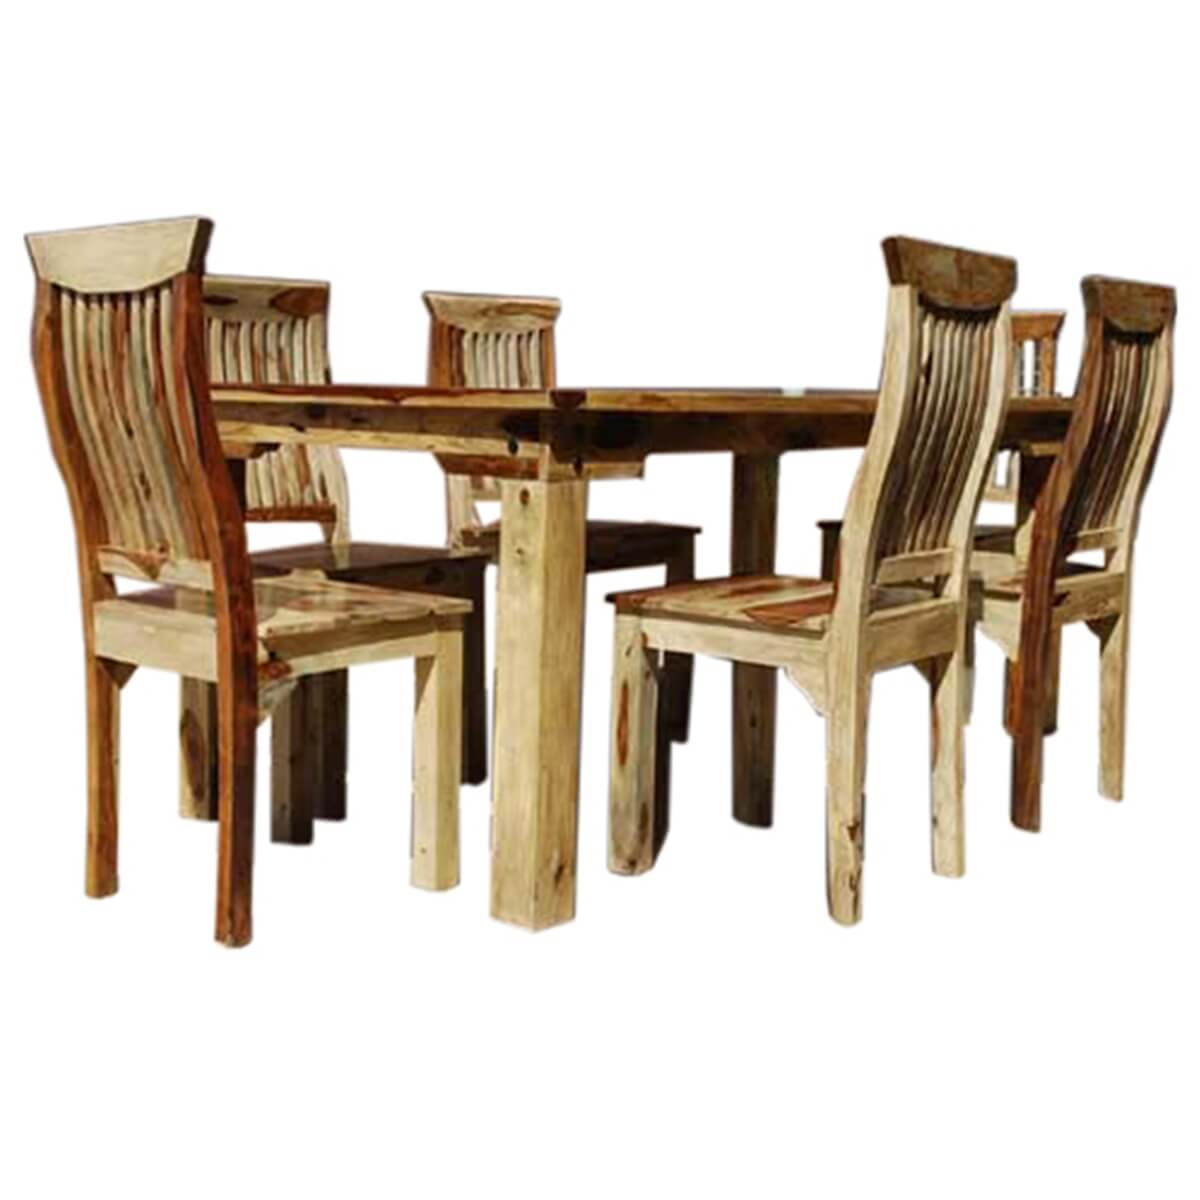 7 piece formal dining room kitchen table chair set rustic for Solid wood dining room table and chairs